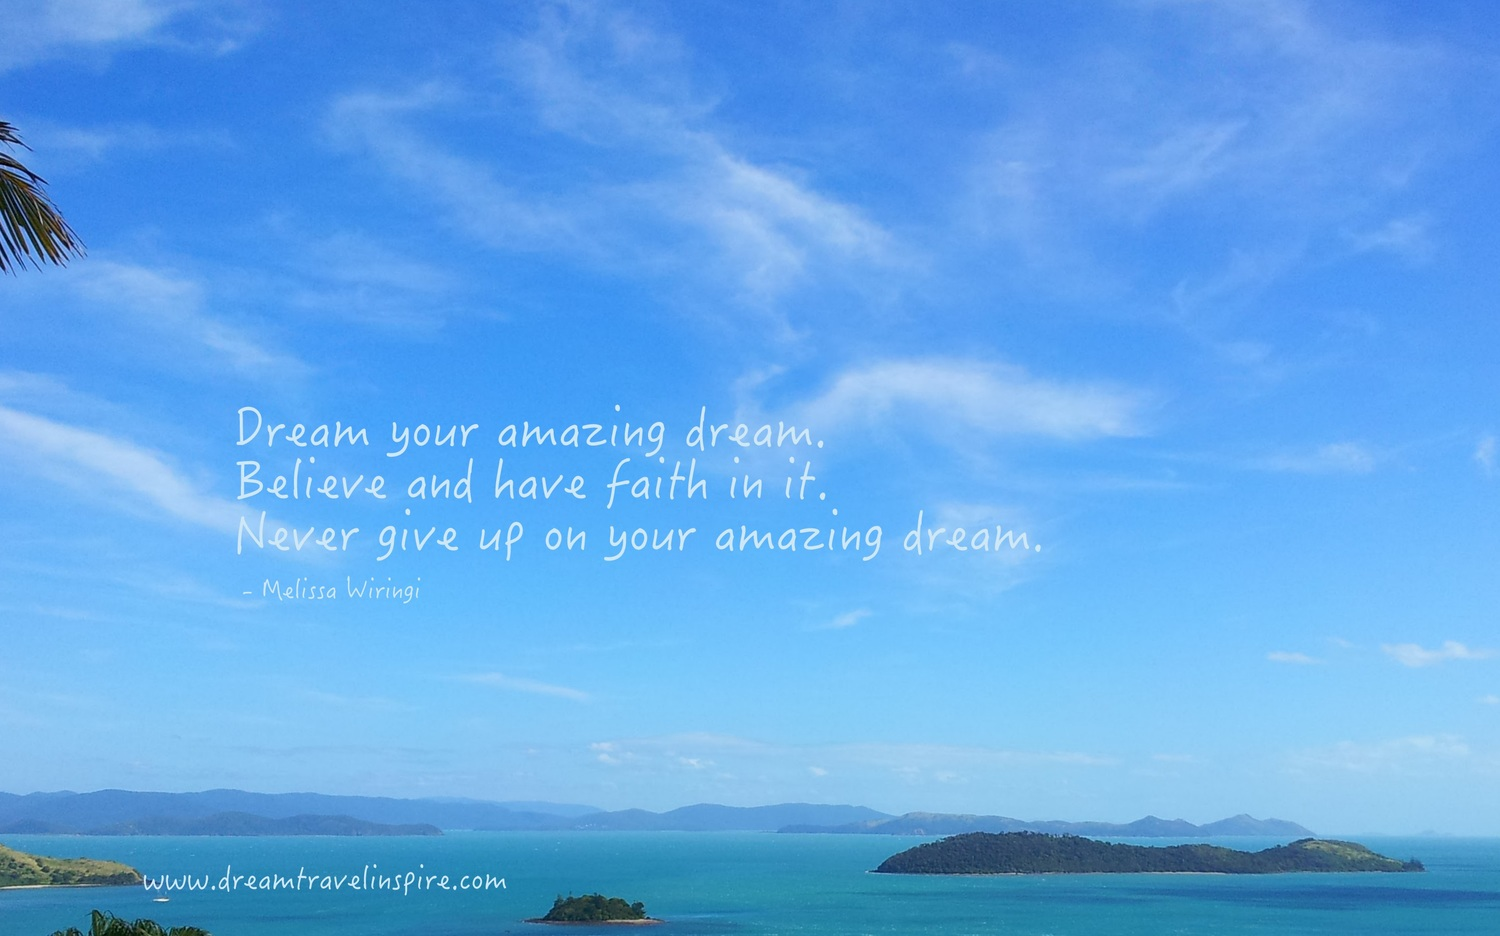 Dream your amazingdream. Believe and have faithin it.Never give up on your amazing dream! - The Wiringi's Family Travel Blog